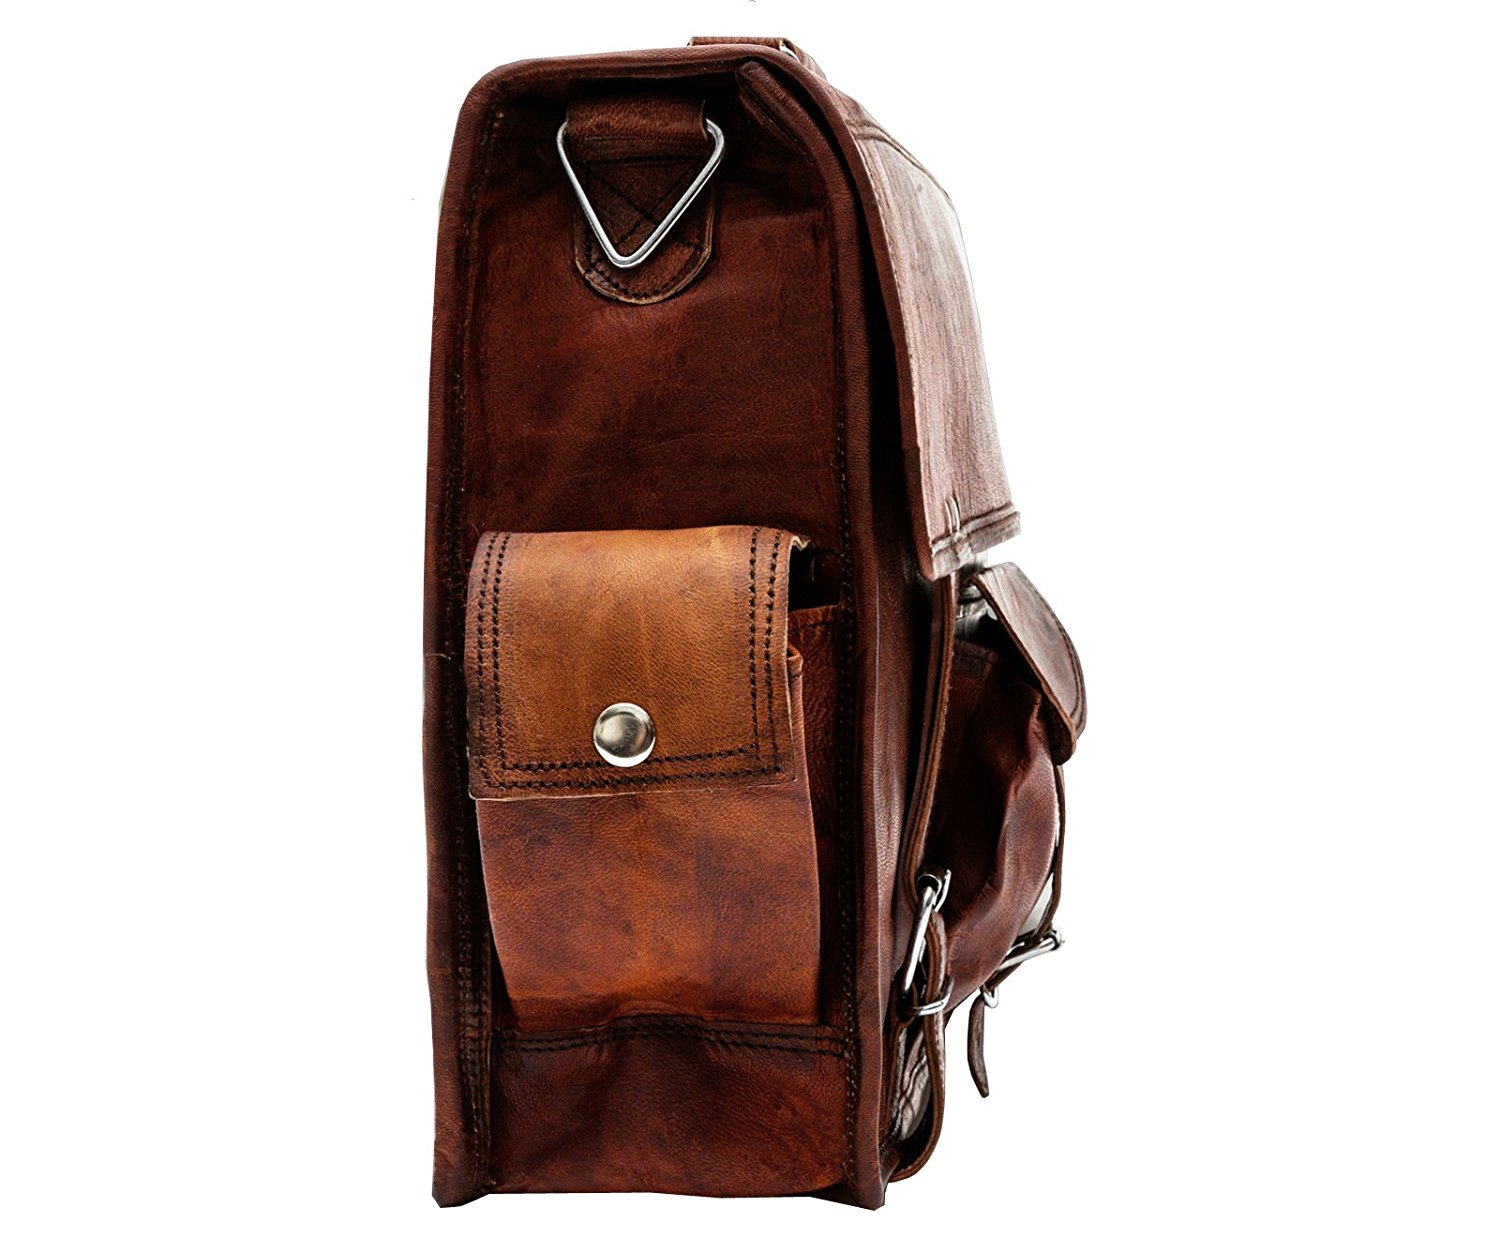 Brown Leather Briefcase Bag with side pockets